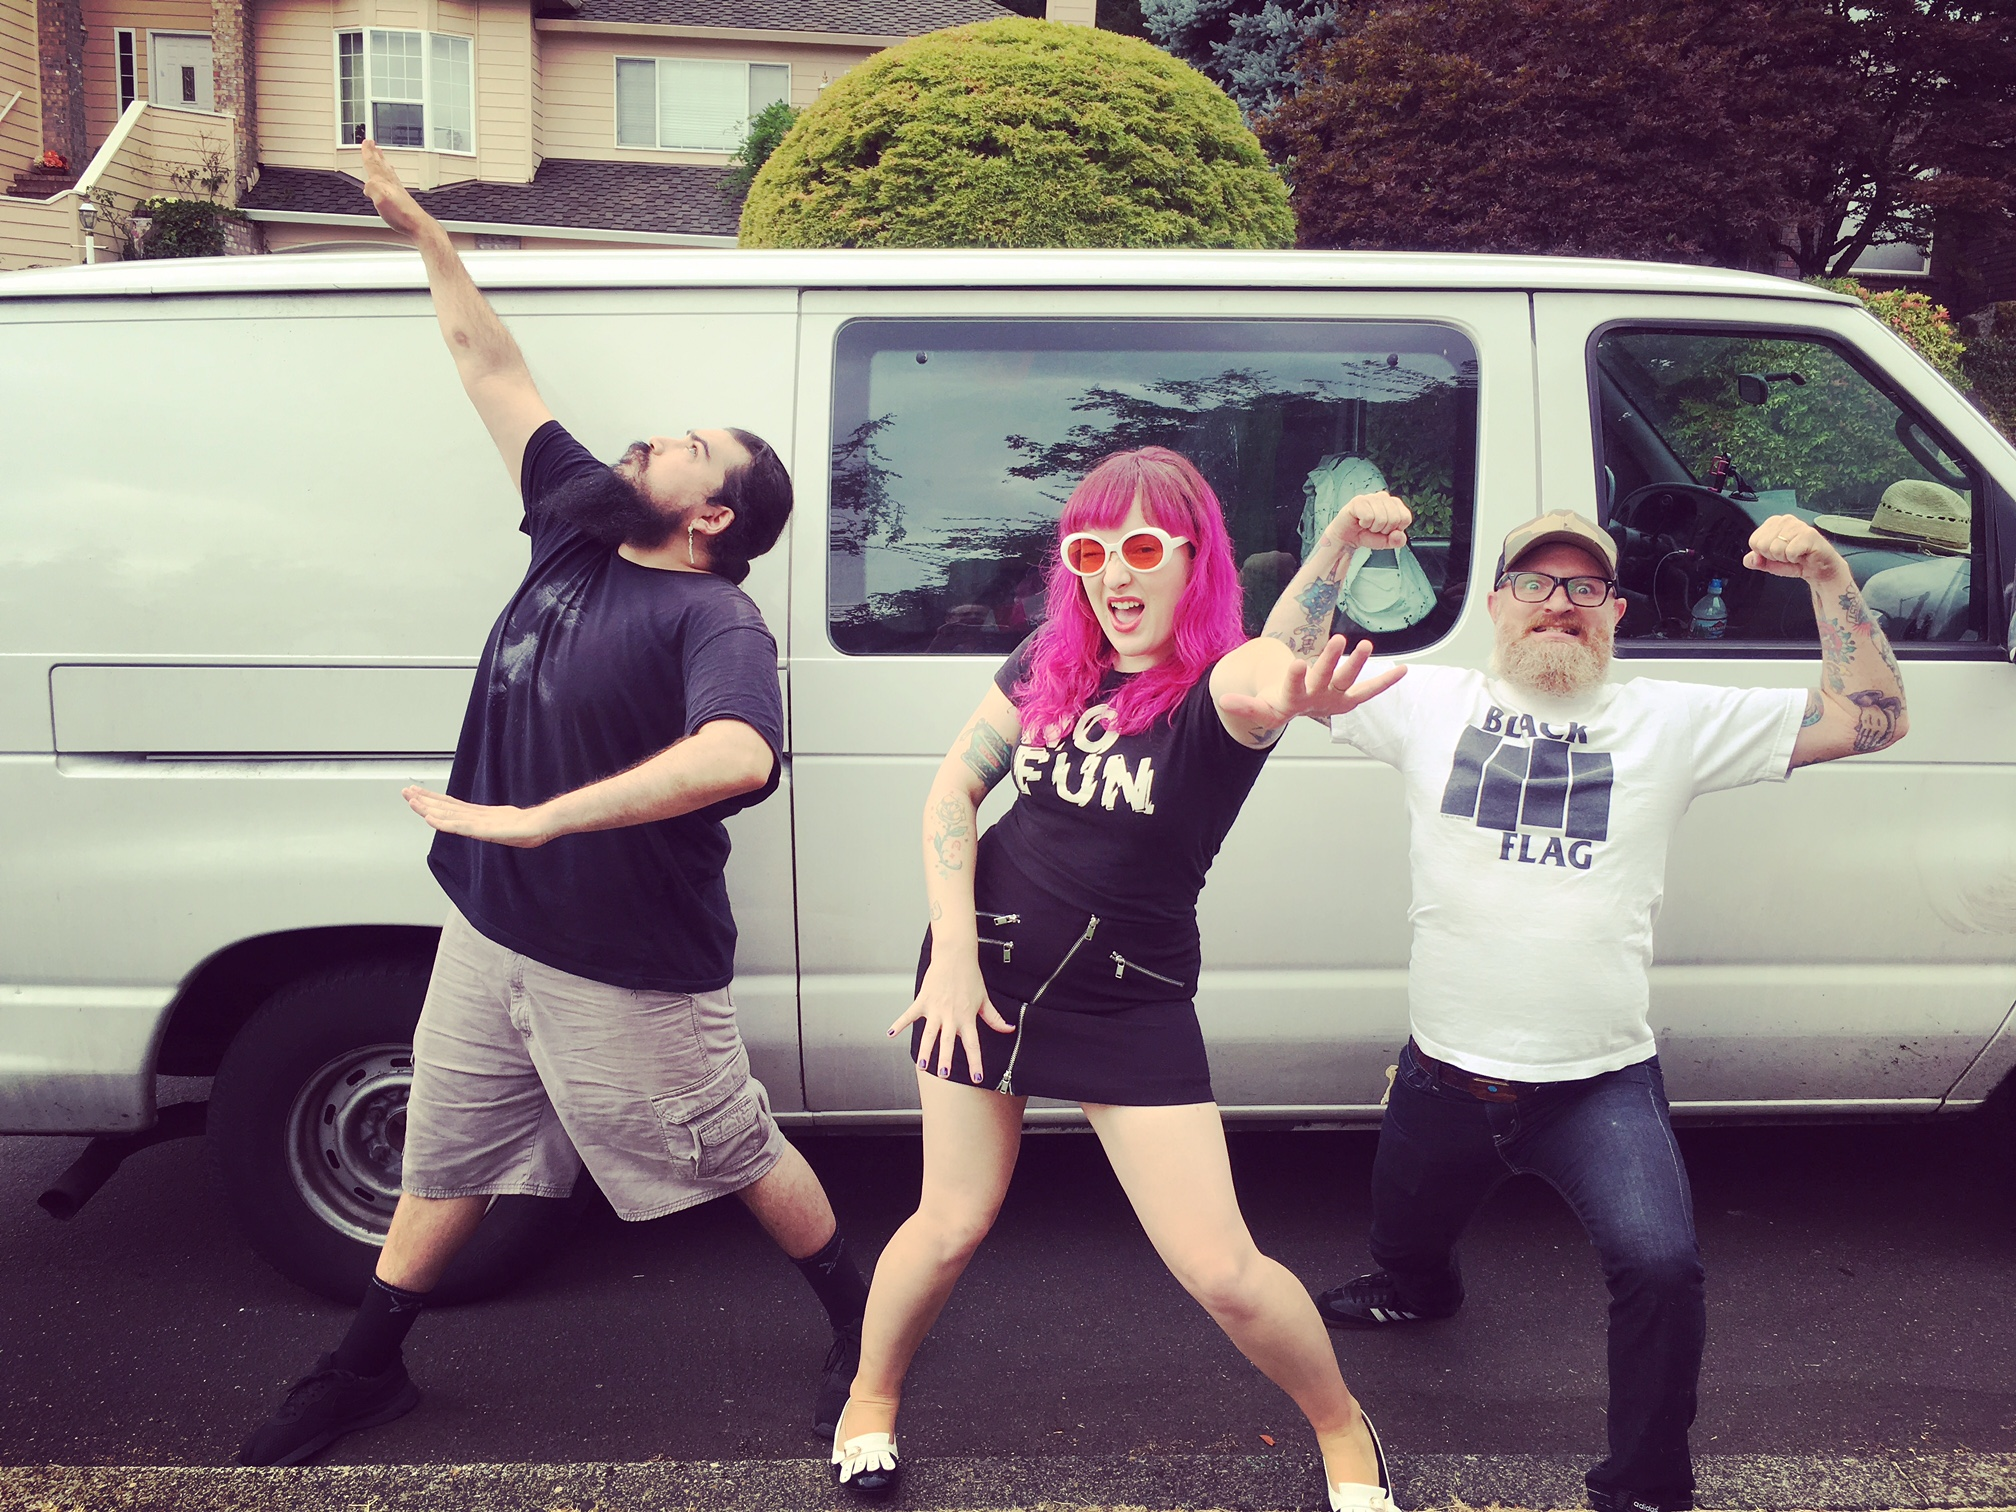 Pictured in action! Hayley and the Crushers in Portland after hanging with the family and eating some steak tacos! En route to Seattle with a gleam in our eye and a swagger in our hips! Tips for van living include: Bring an eye mask, fart respectfully, and never purchase a rare CD that indicates it contains rare early interviews with Metallica because it will just be Lars rambling up some cocaine-fueled jibber jabber.